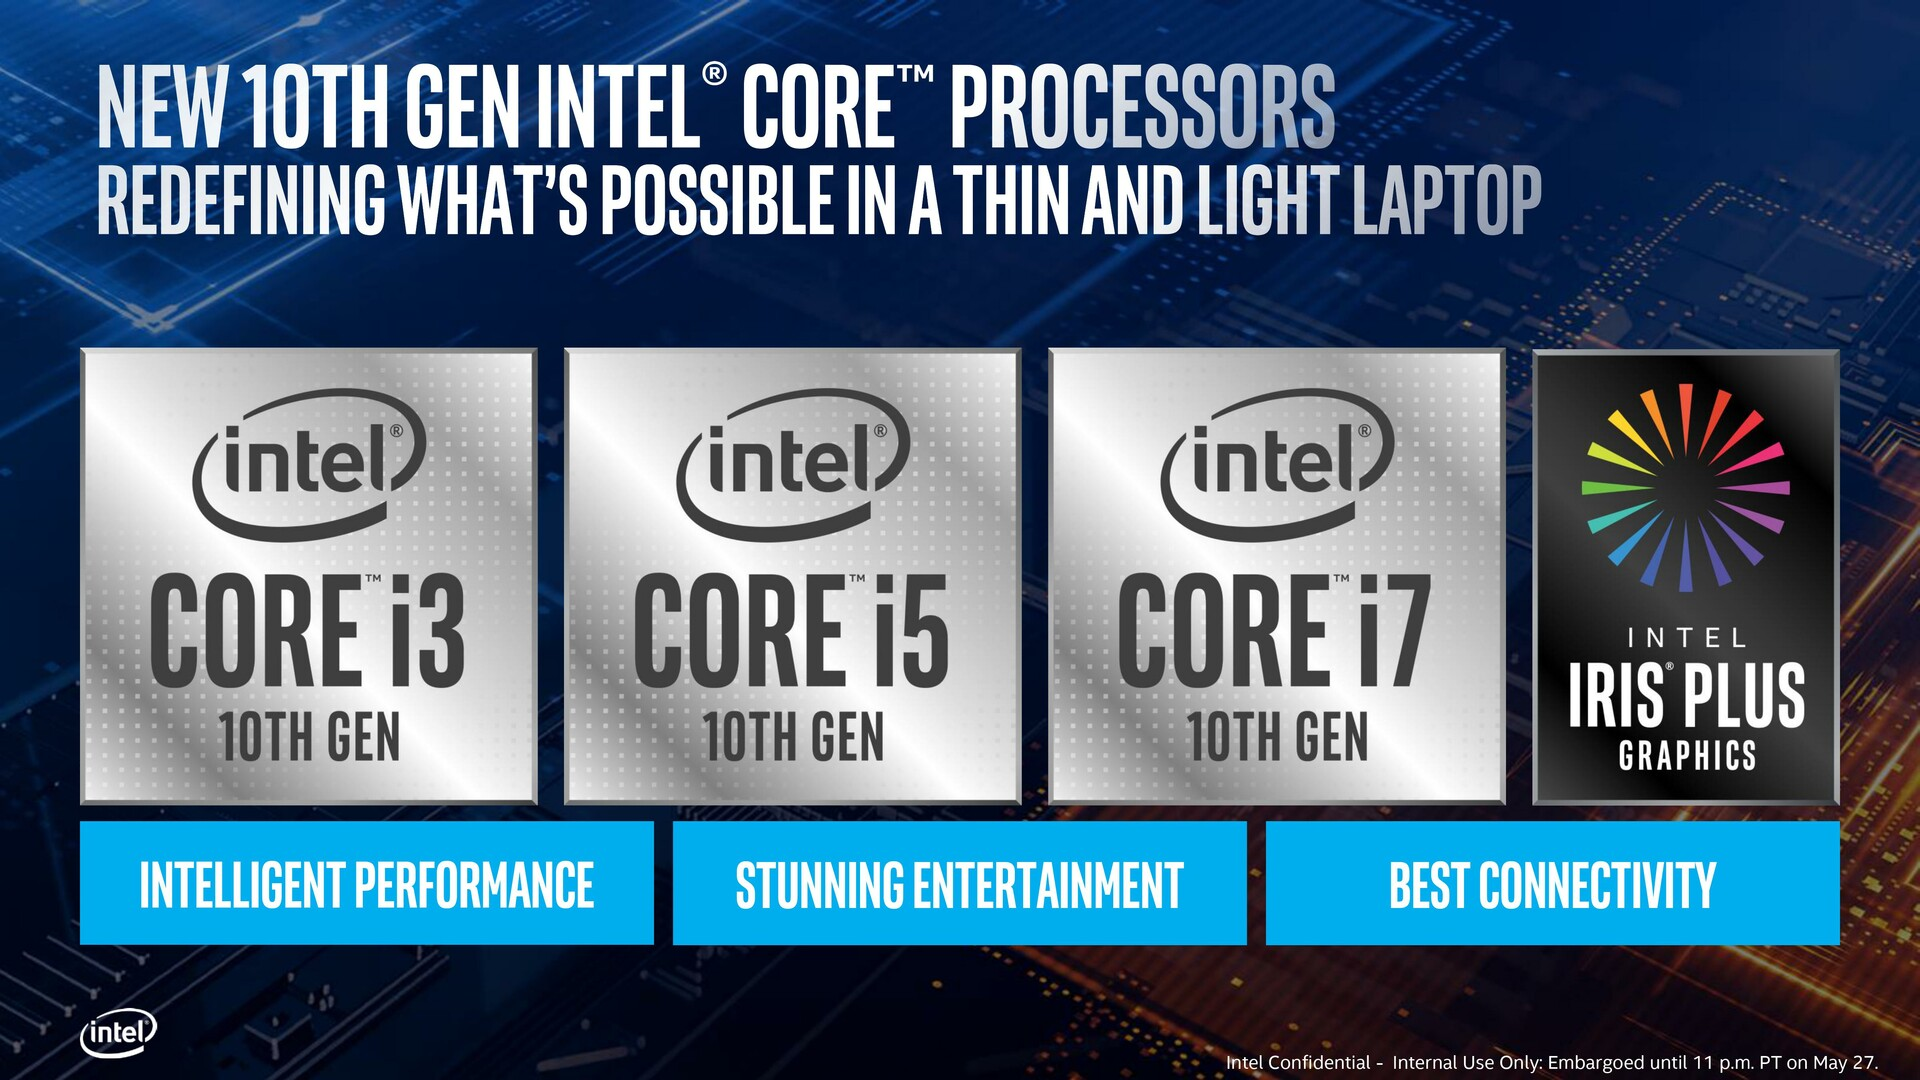 10th Gen Intel Core processors unveiled at Computex 2019